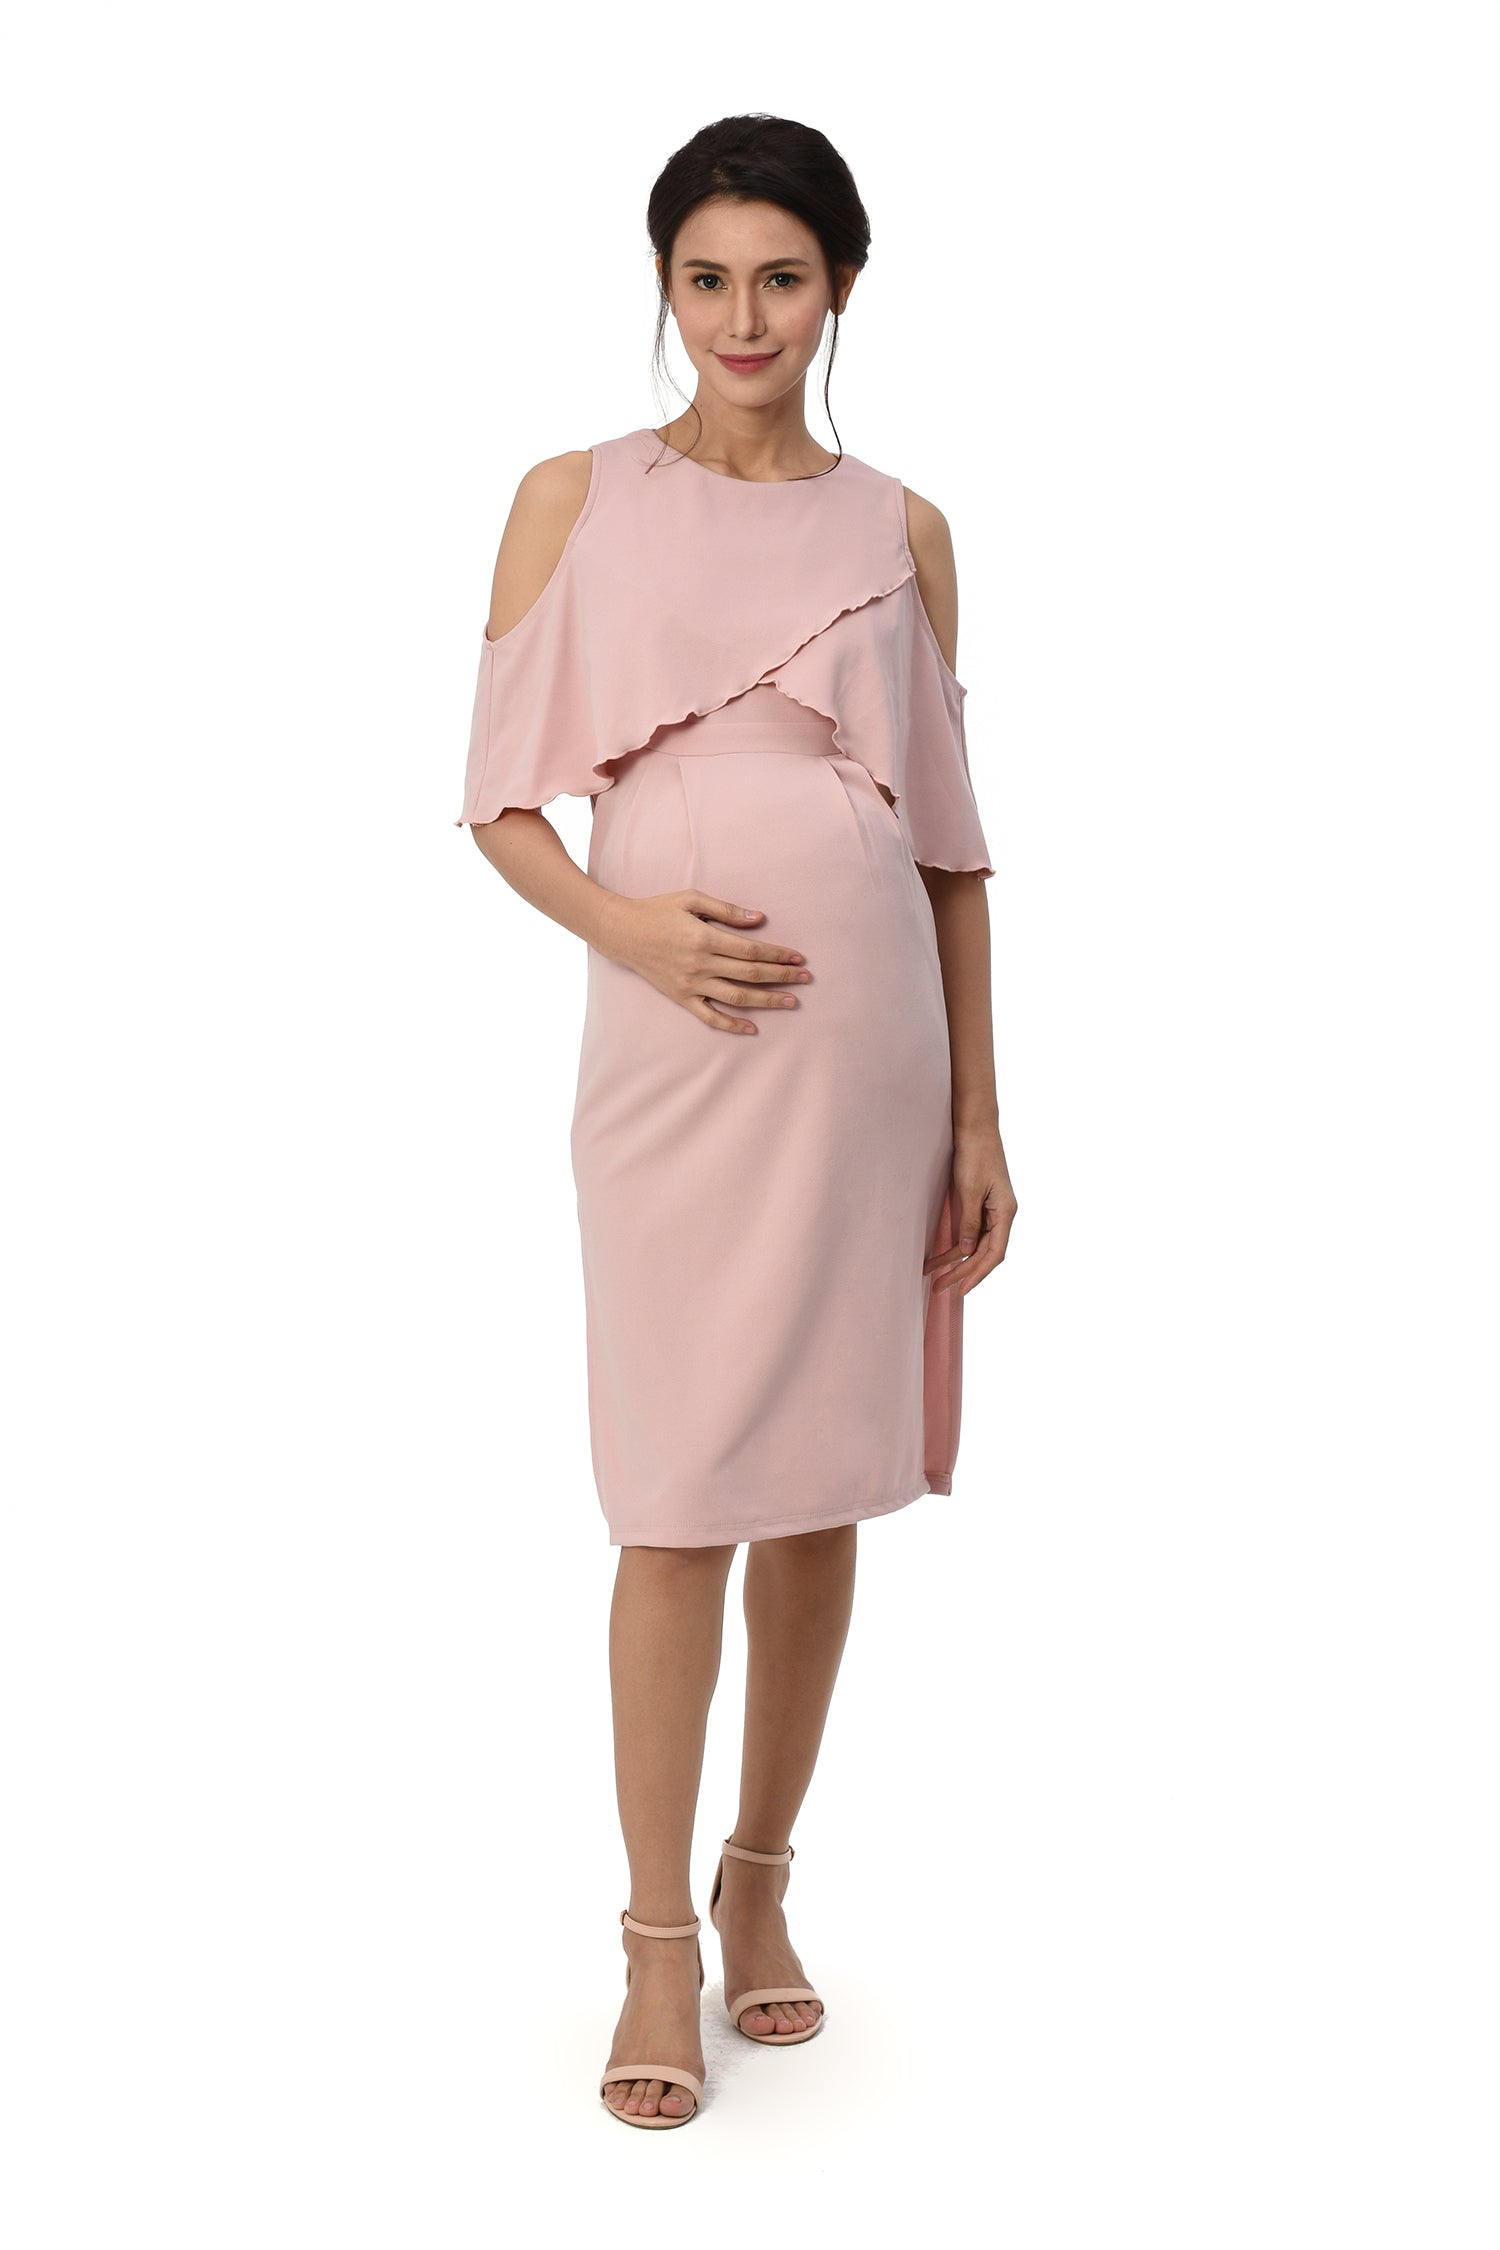 f31d6b919b6 Cold-Shoulder Nursing Dress (GNSD 049) BLUSH – Great Expectations Maternity  PH